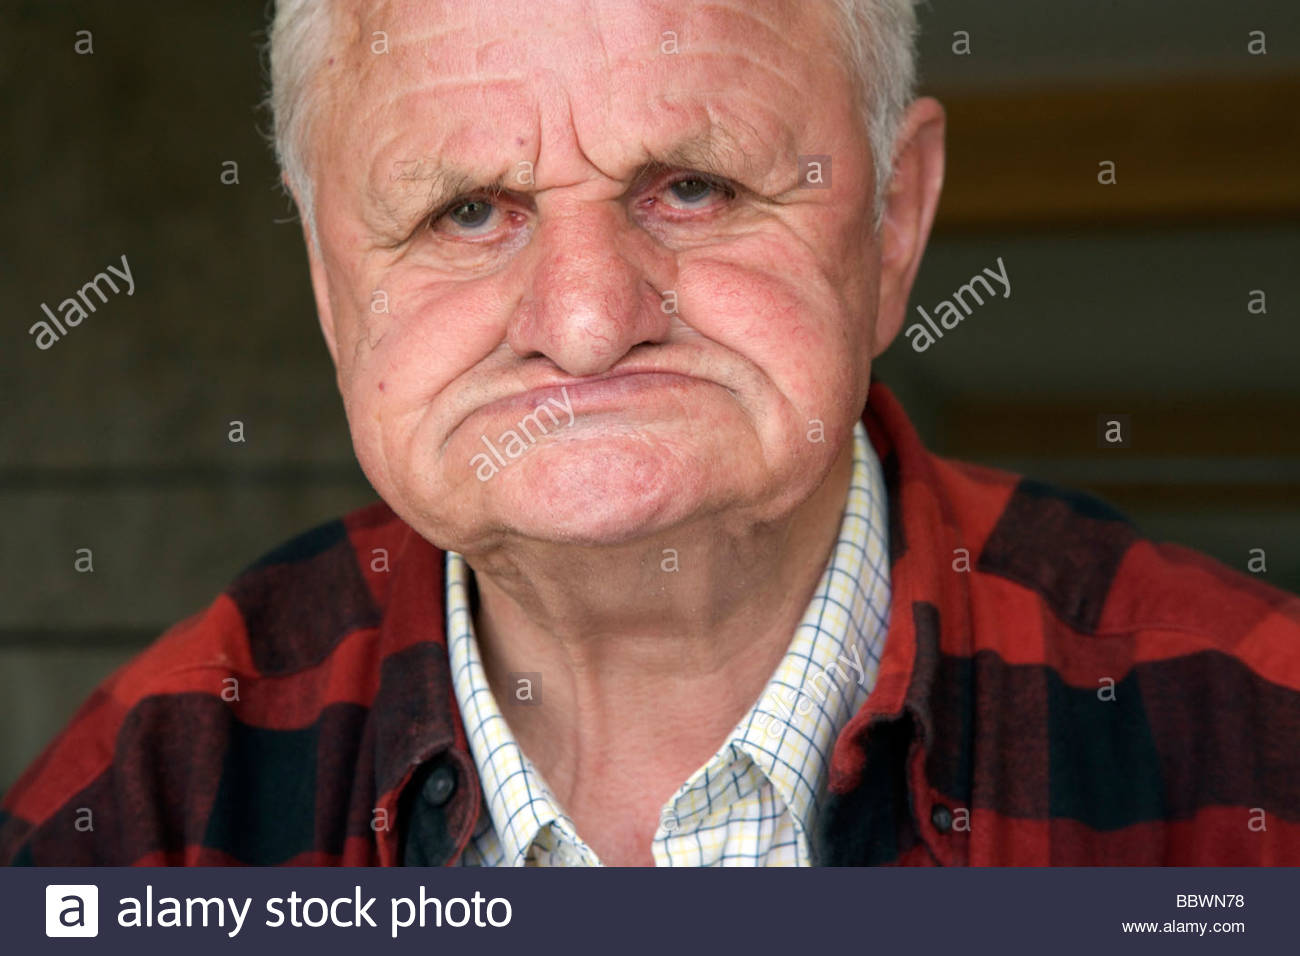 face of elderly 80 plus years man without teeth - Stock Image